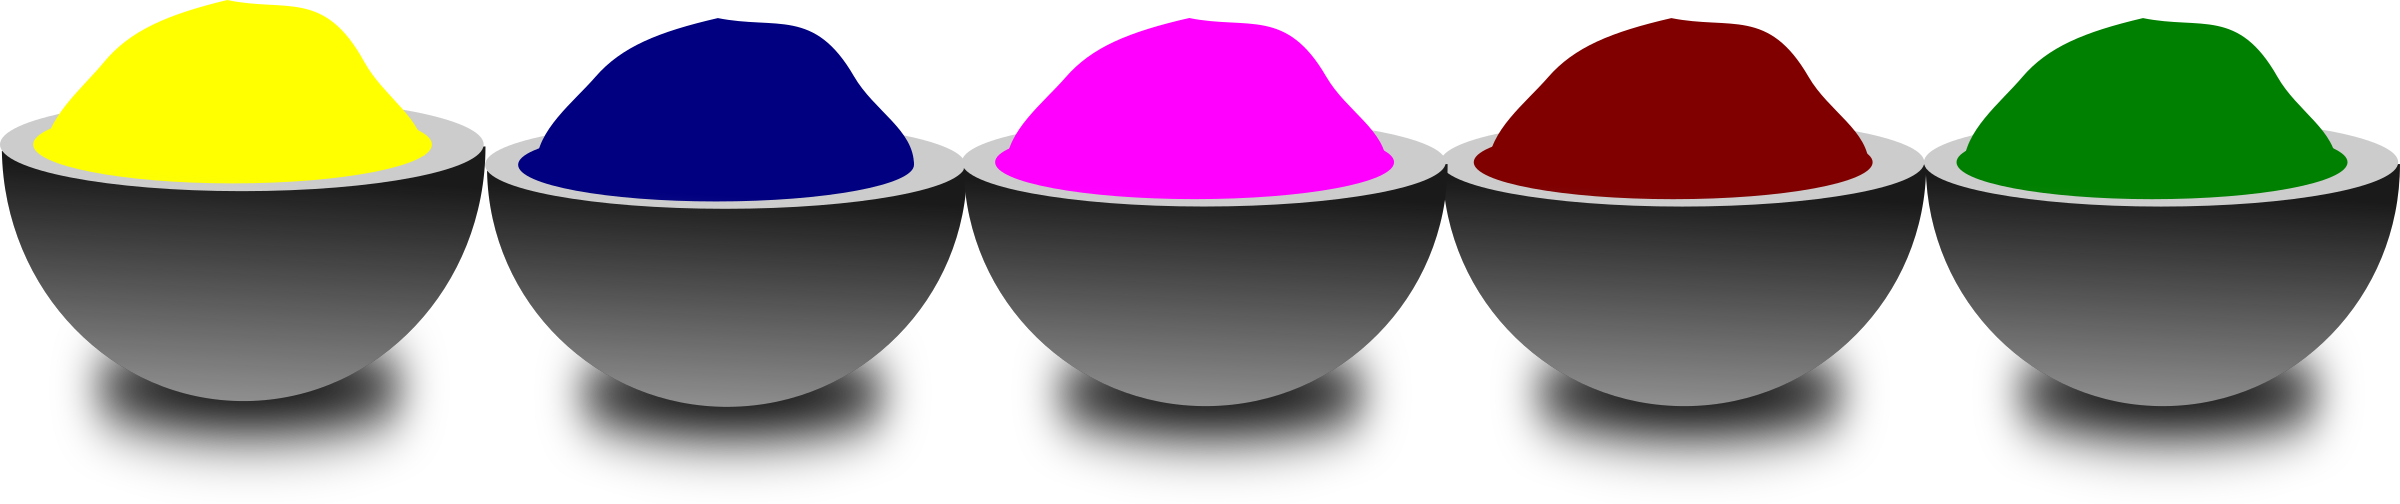 Color Bowl by gsagri04